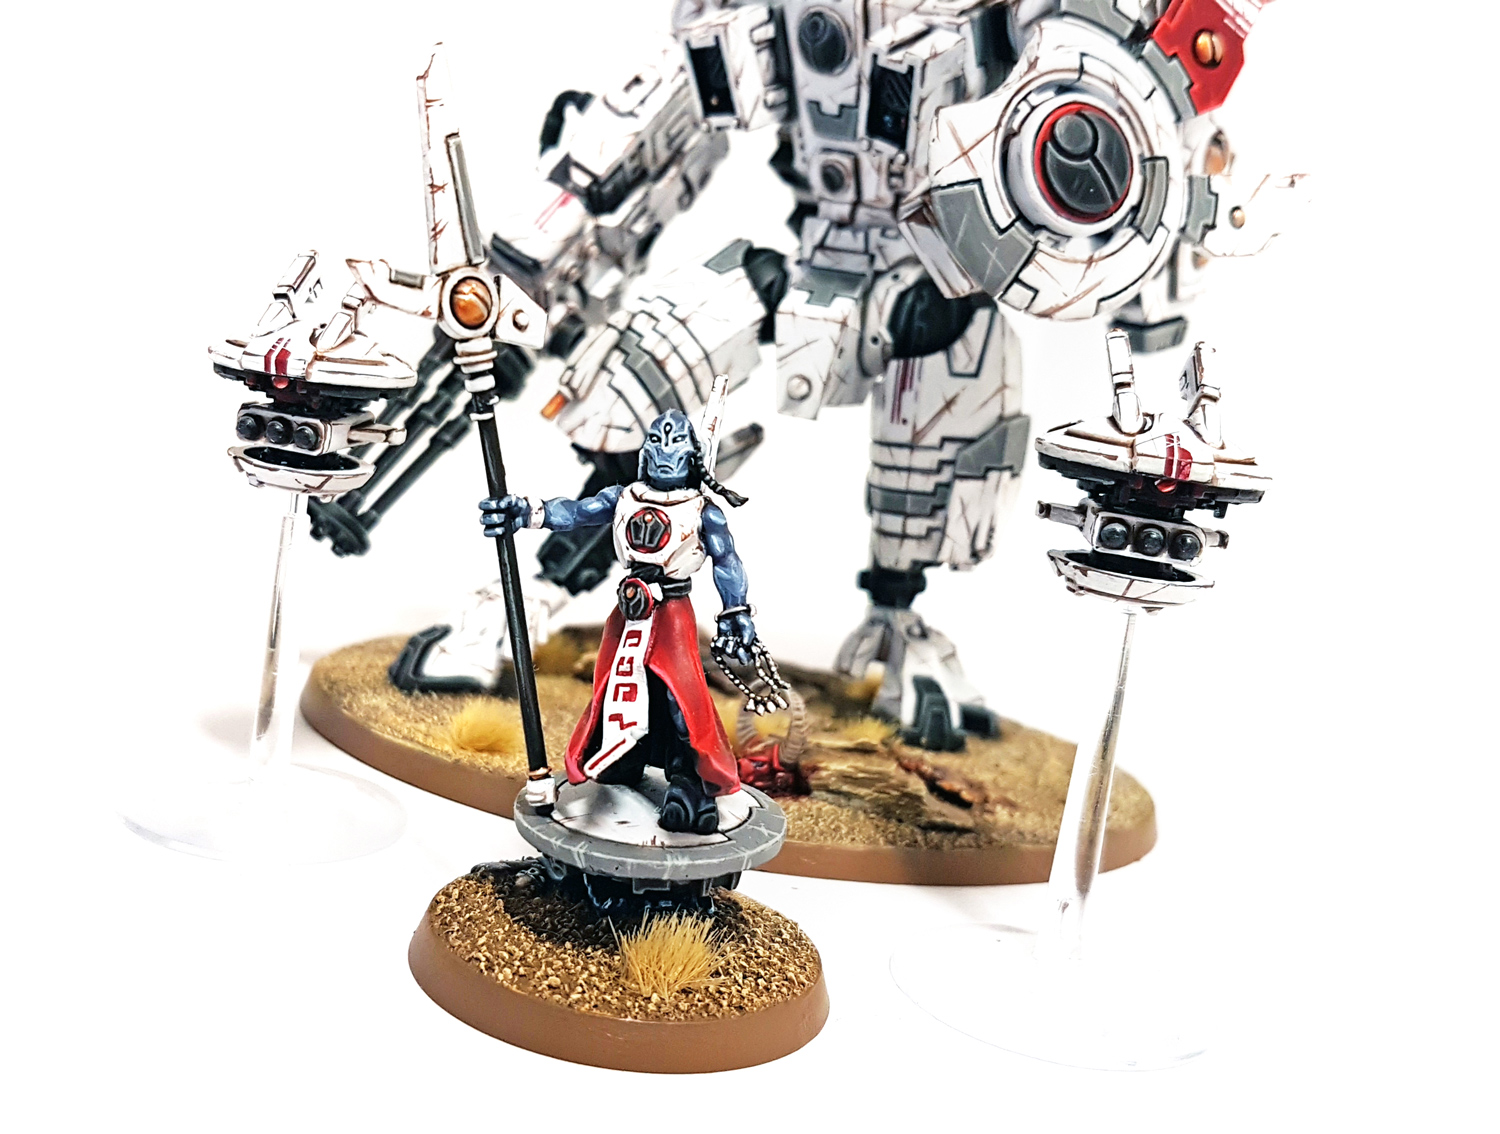 Deathhammer40k Warhammer 40,000 Commission Painted Tau Empire Farsight Enclave Project Ethereal